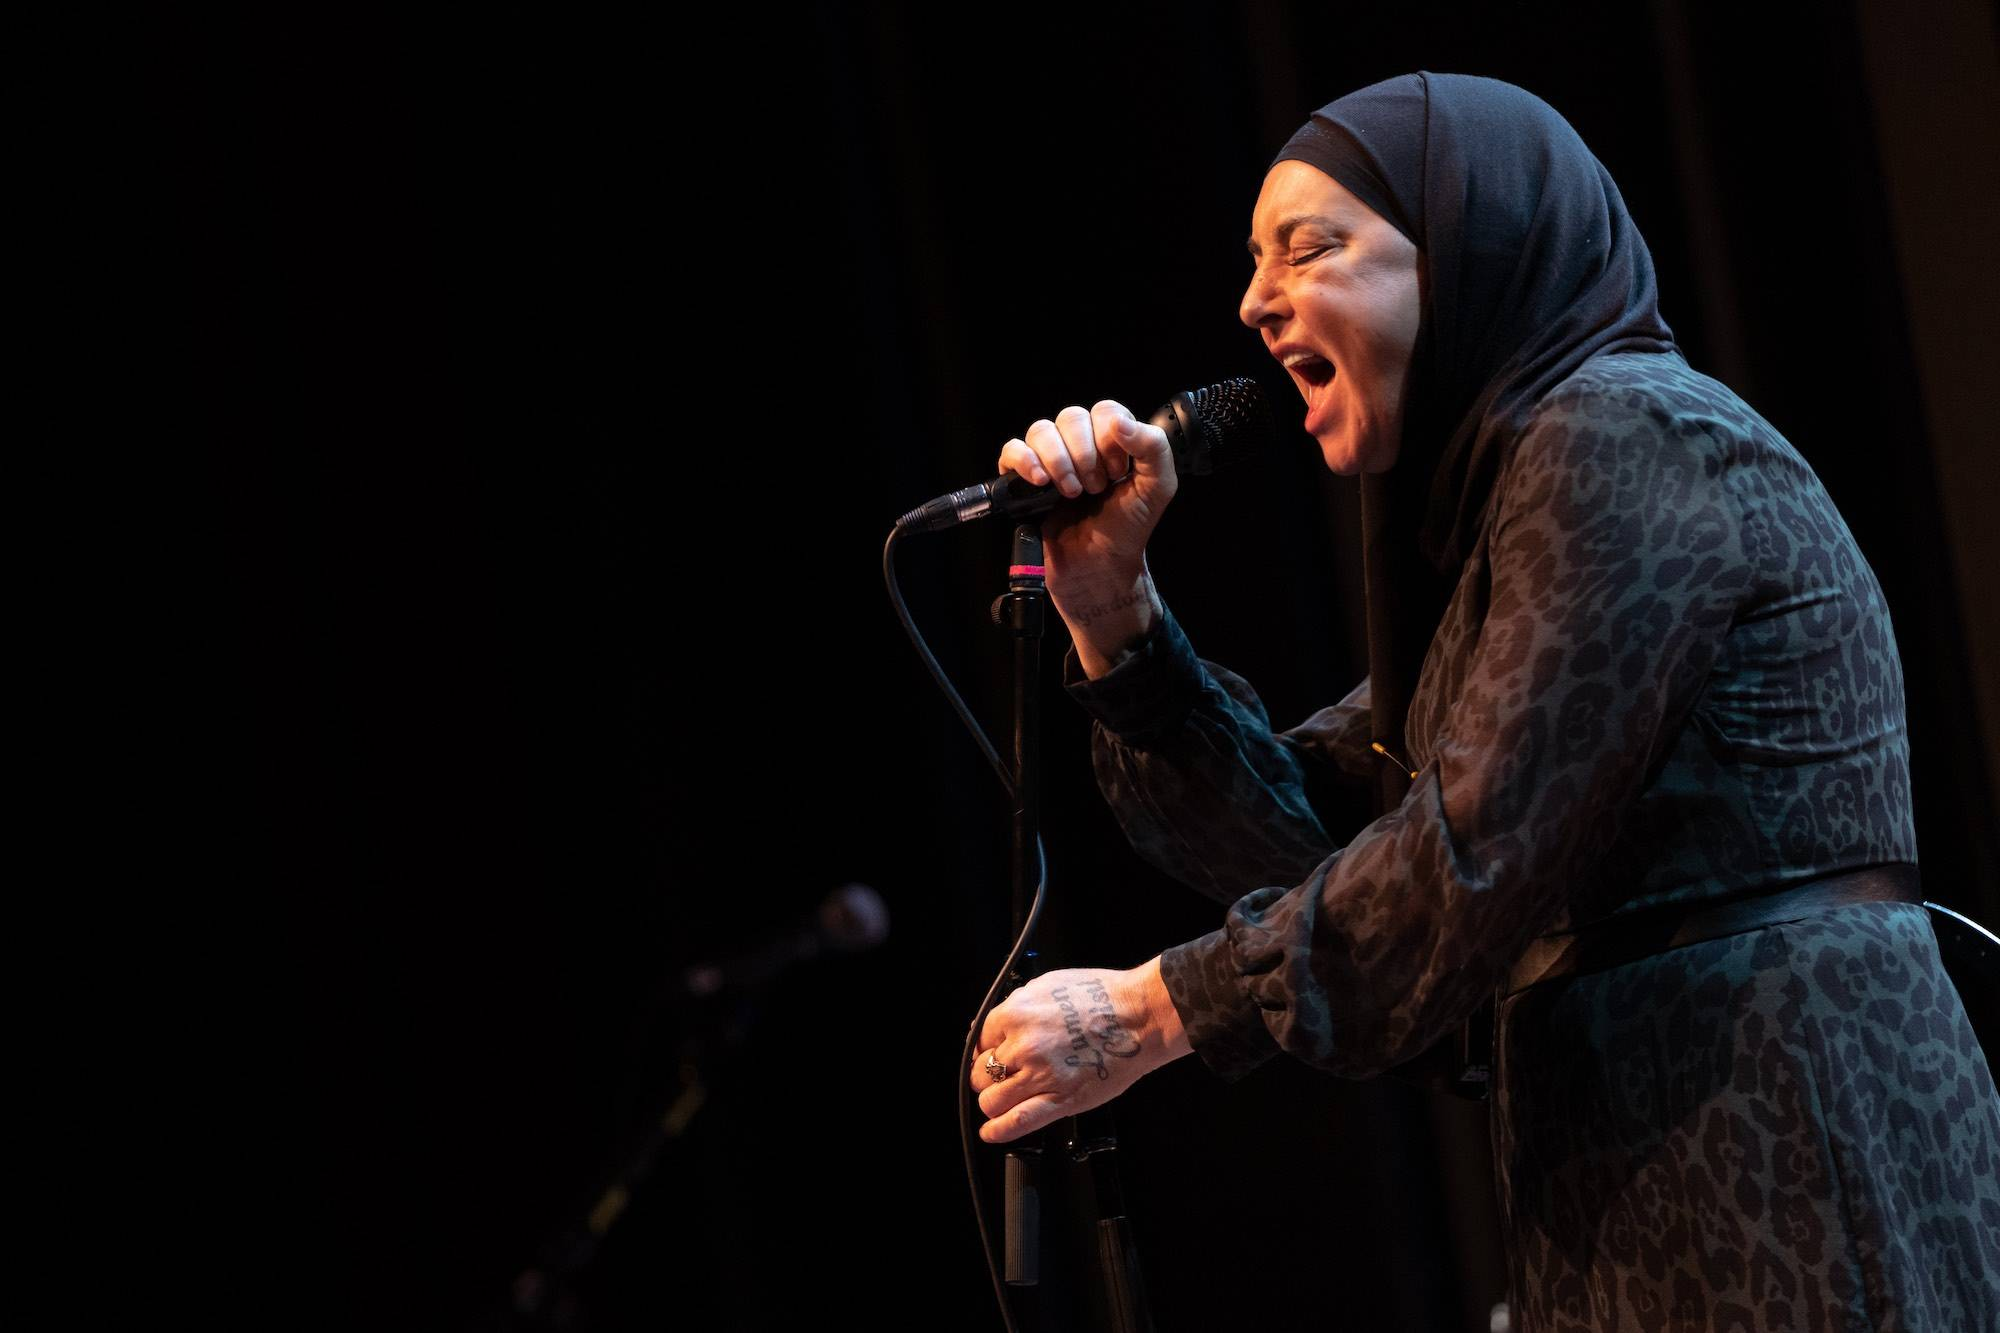 Sinead O'Connor at the Vogue Theatre, Vancouver, Feb 1 2020. Scott Alexander photo.